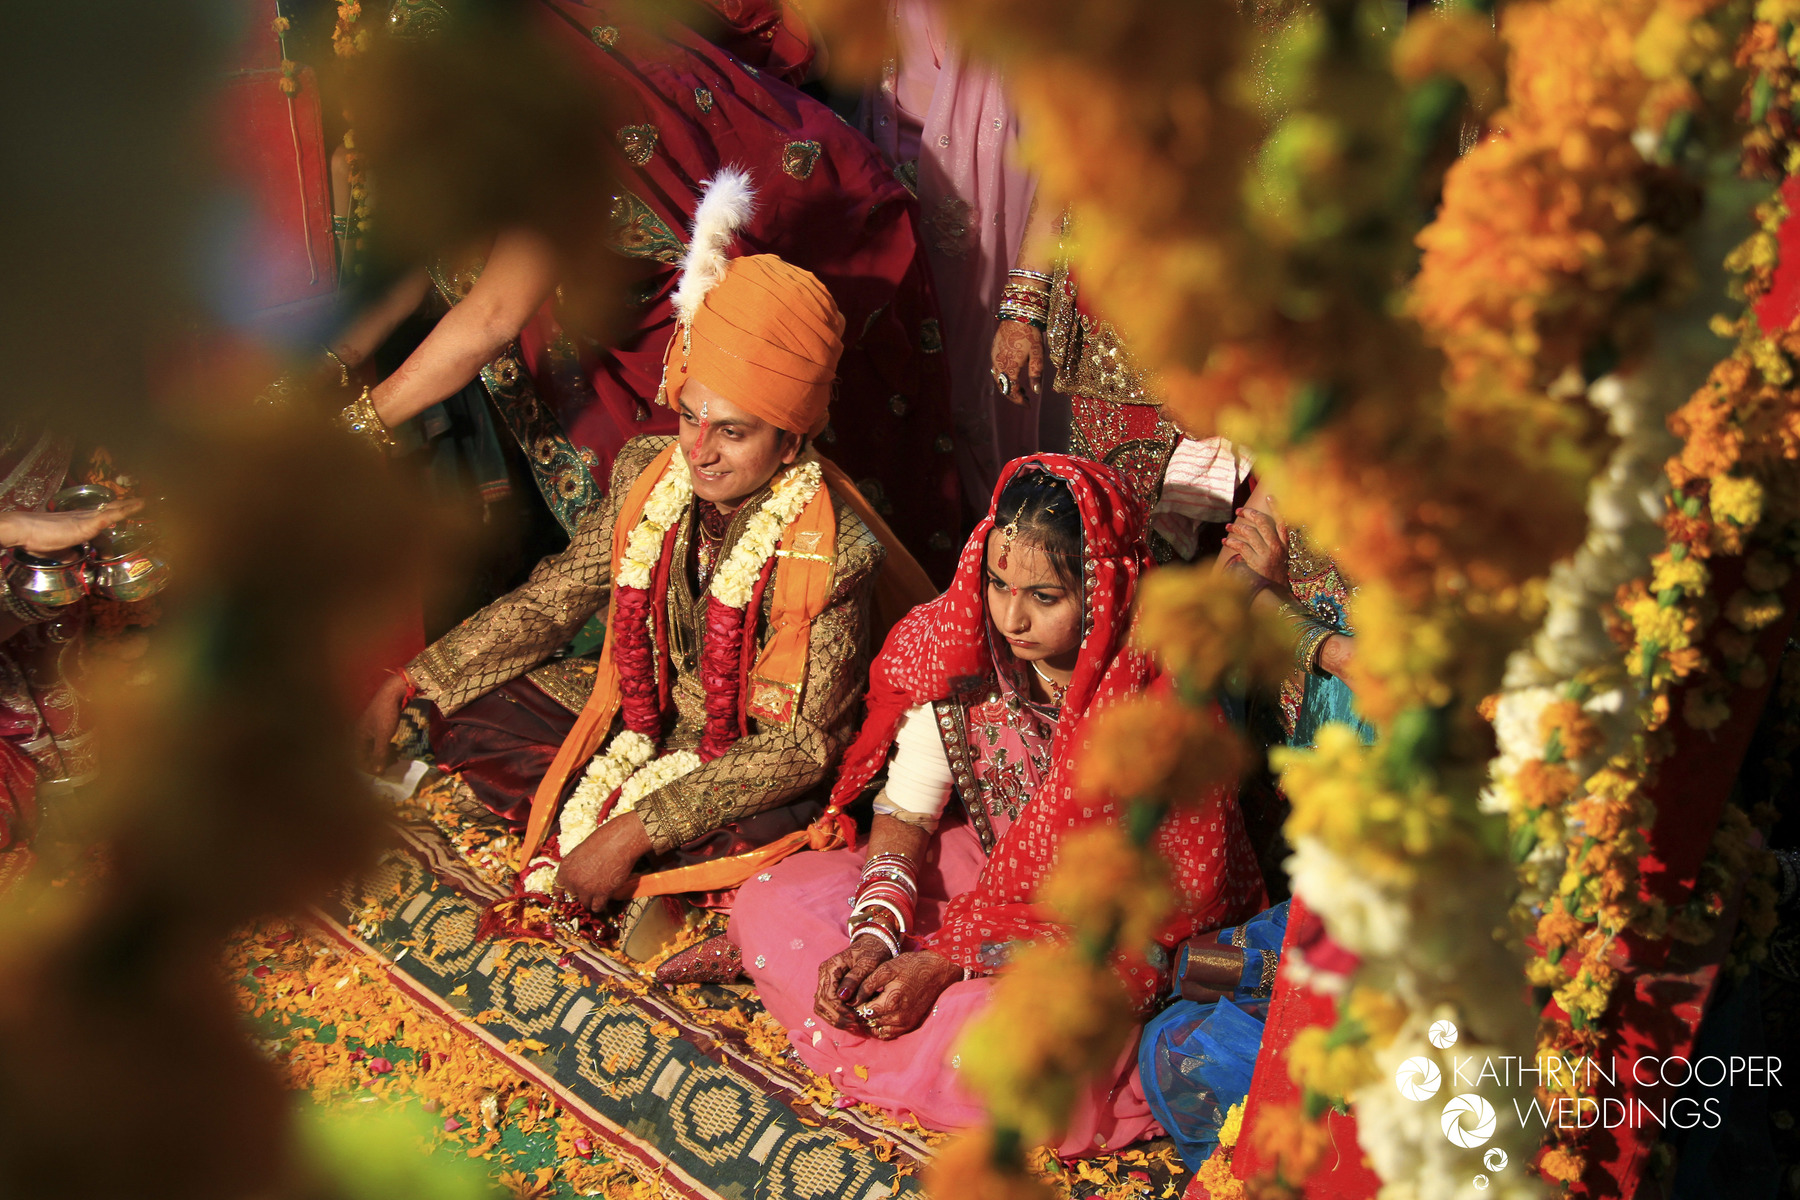 Destination wedding in Rajasthan India - Kathryn Cooper Wedding photography